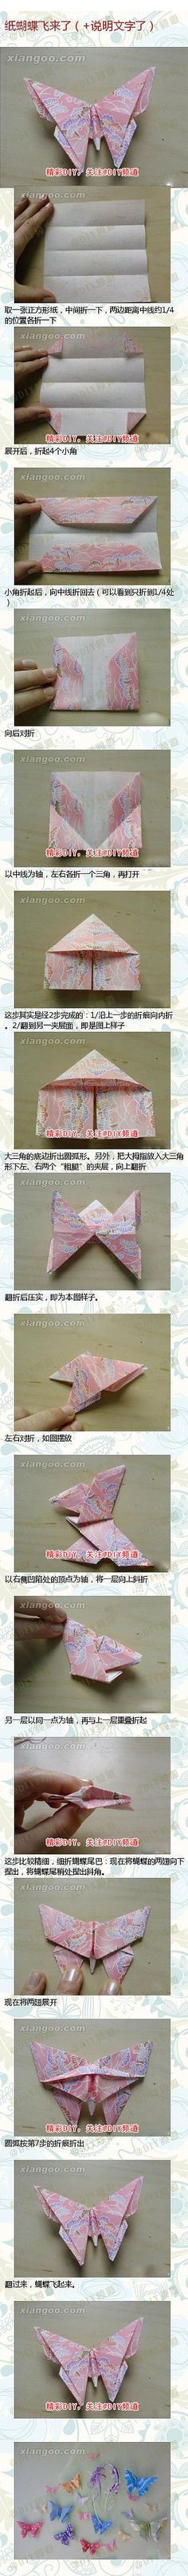 Origami Moth Butterfly Paper Folding Photo Tutorial How To DIY Diy Origami, Origami And Kirigami, Origami Paper Art, Origami Butterfly, Butterfly Crafts, Origami Tutorial, Origami Flowers, Diy Paper, Craft Ideas